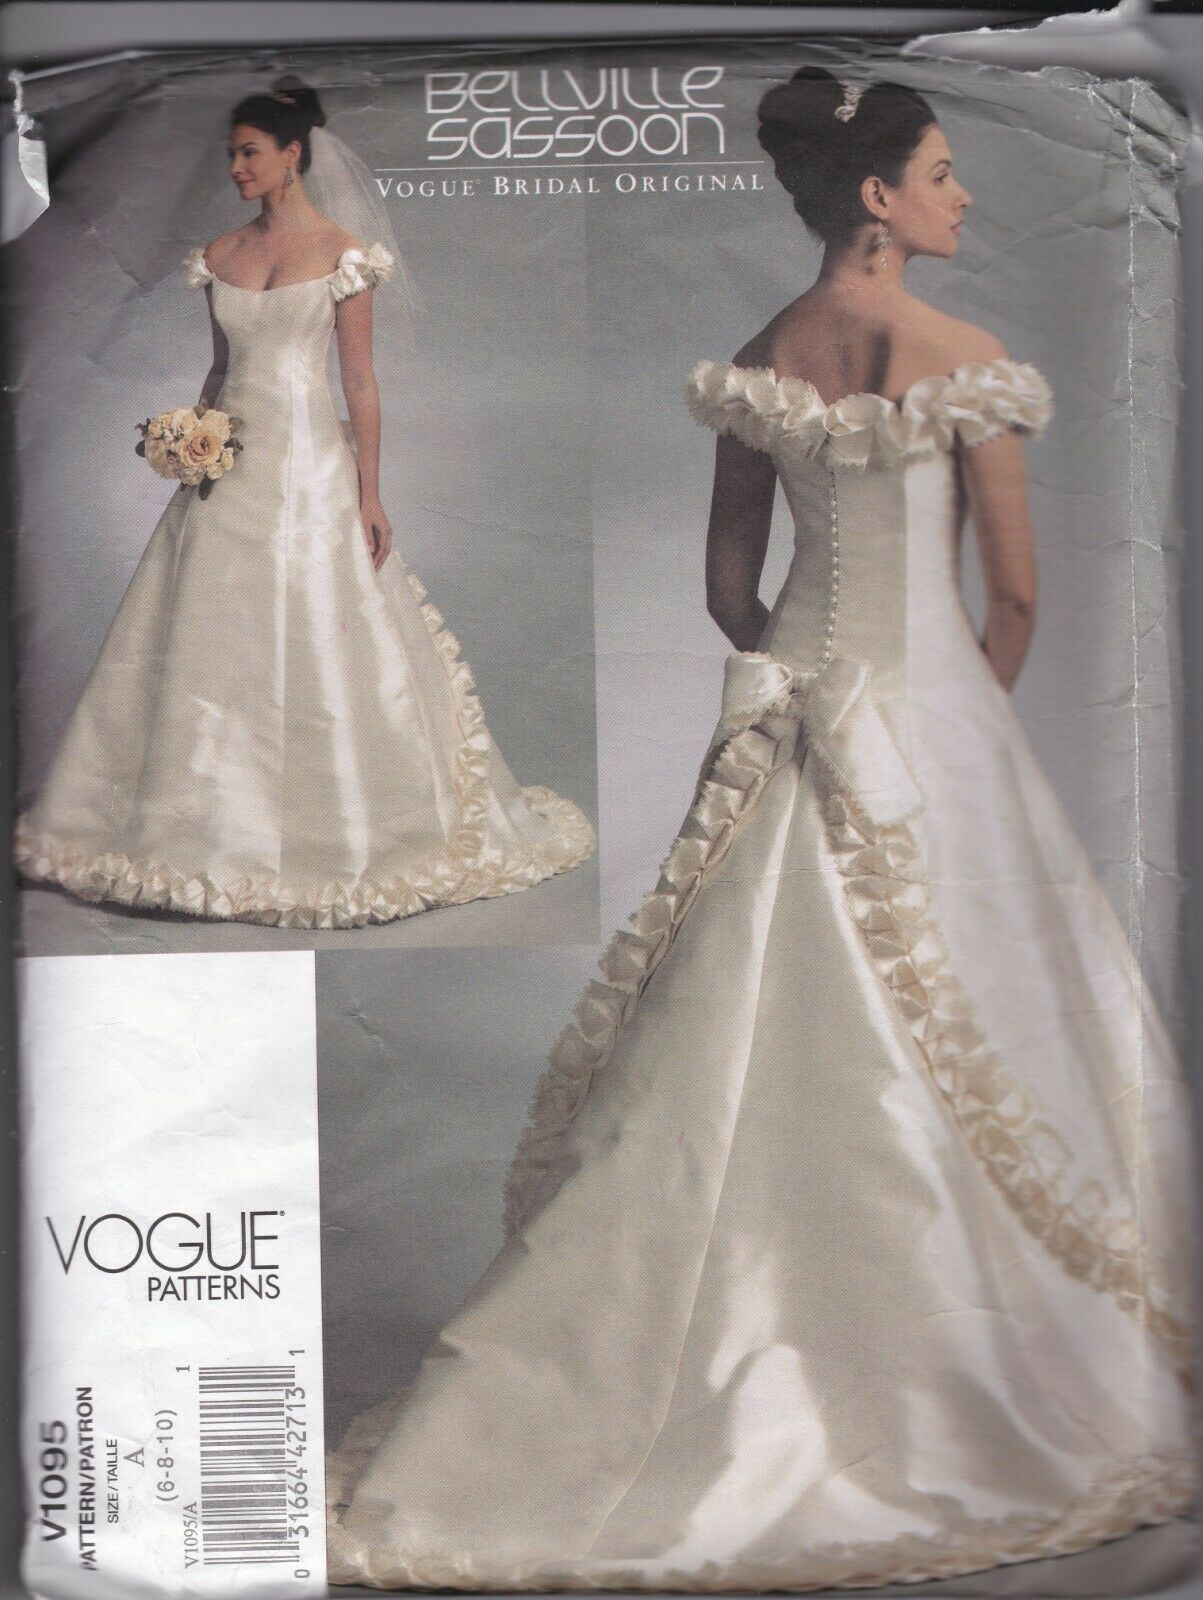 Primary image for Vogue Wedding Gown 1095 Bellville Sassoon Dress Pattern 6-10 C. 2009 Complete